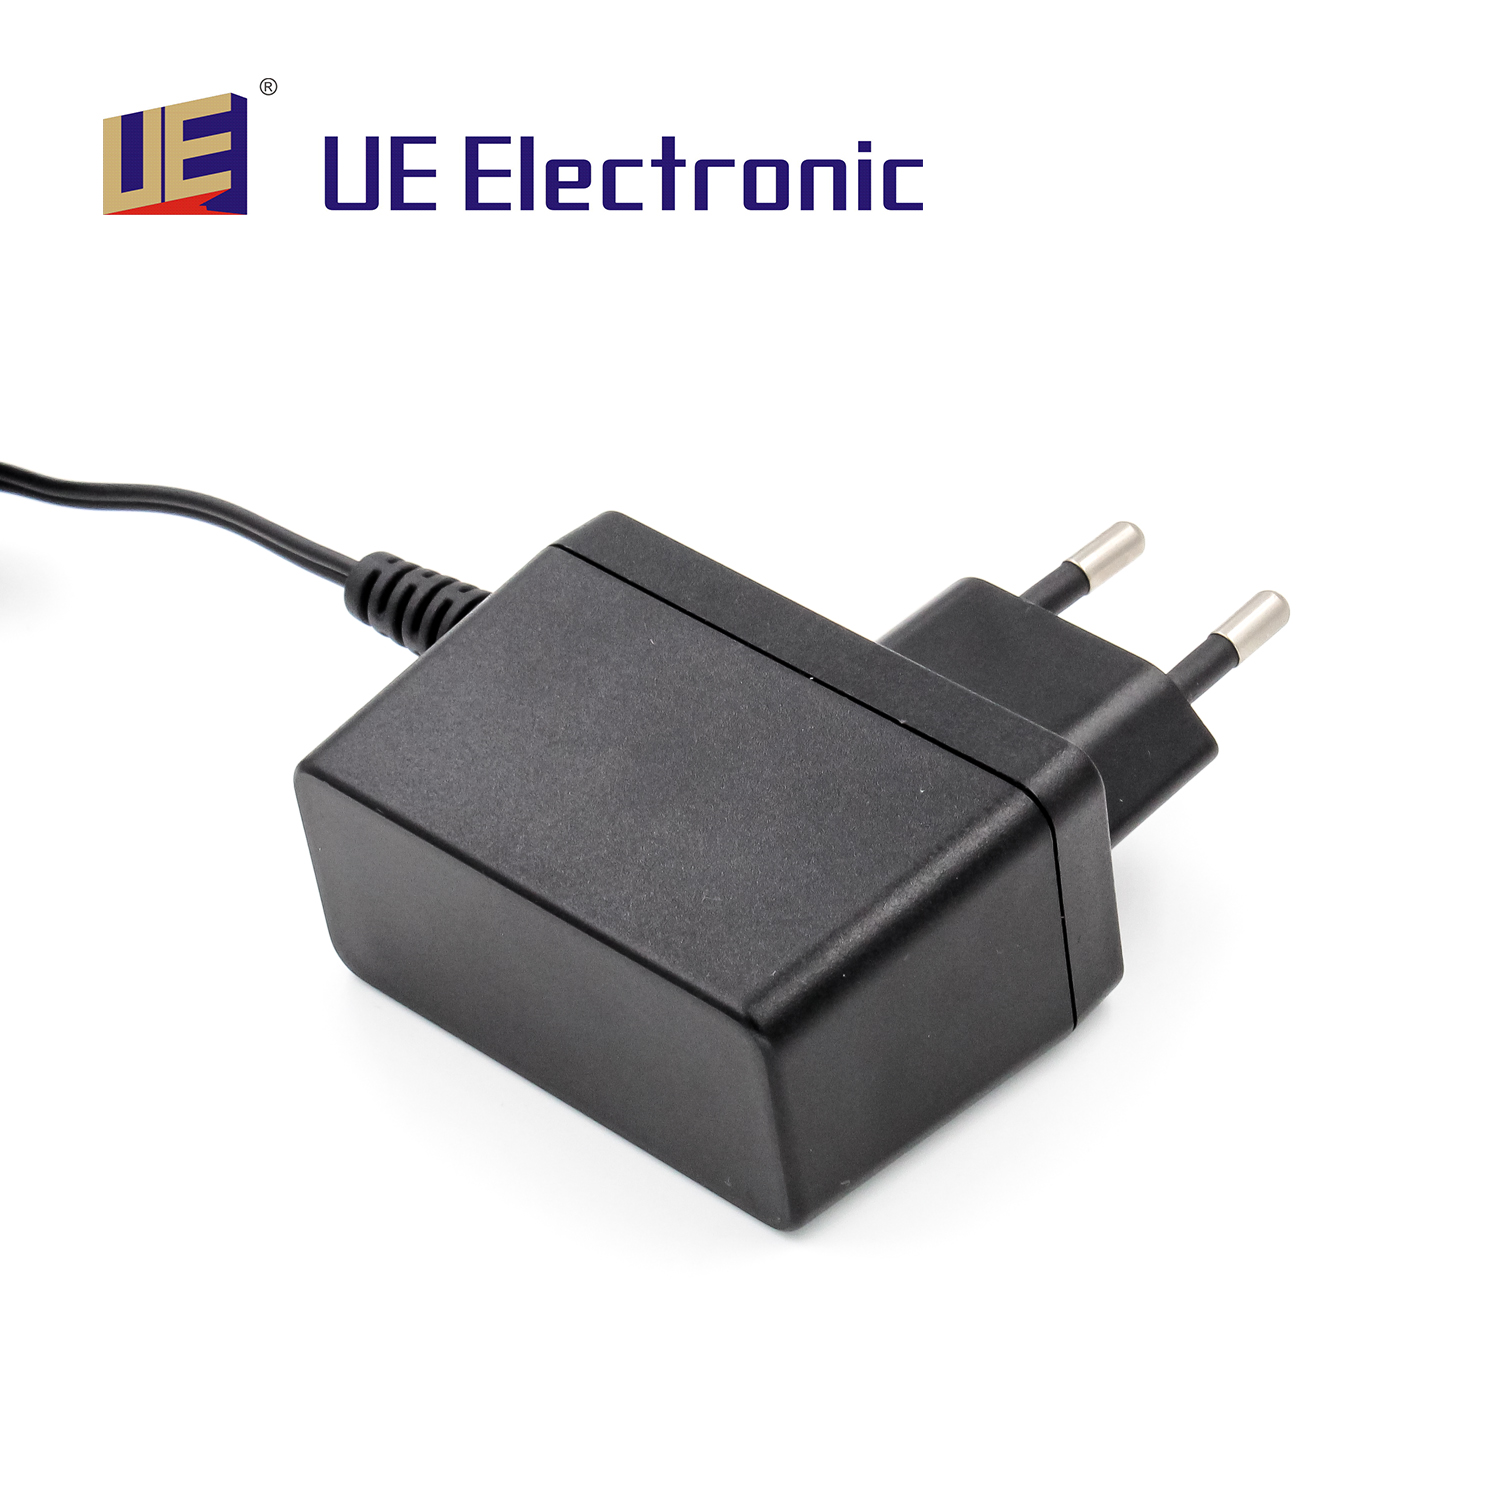 UE Electronic interchangeable AC plugs 18 watts switching power adaptor